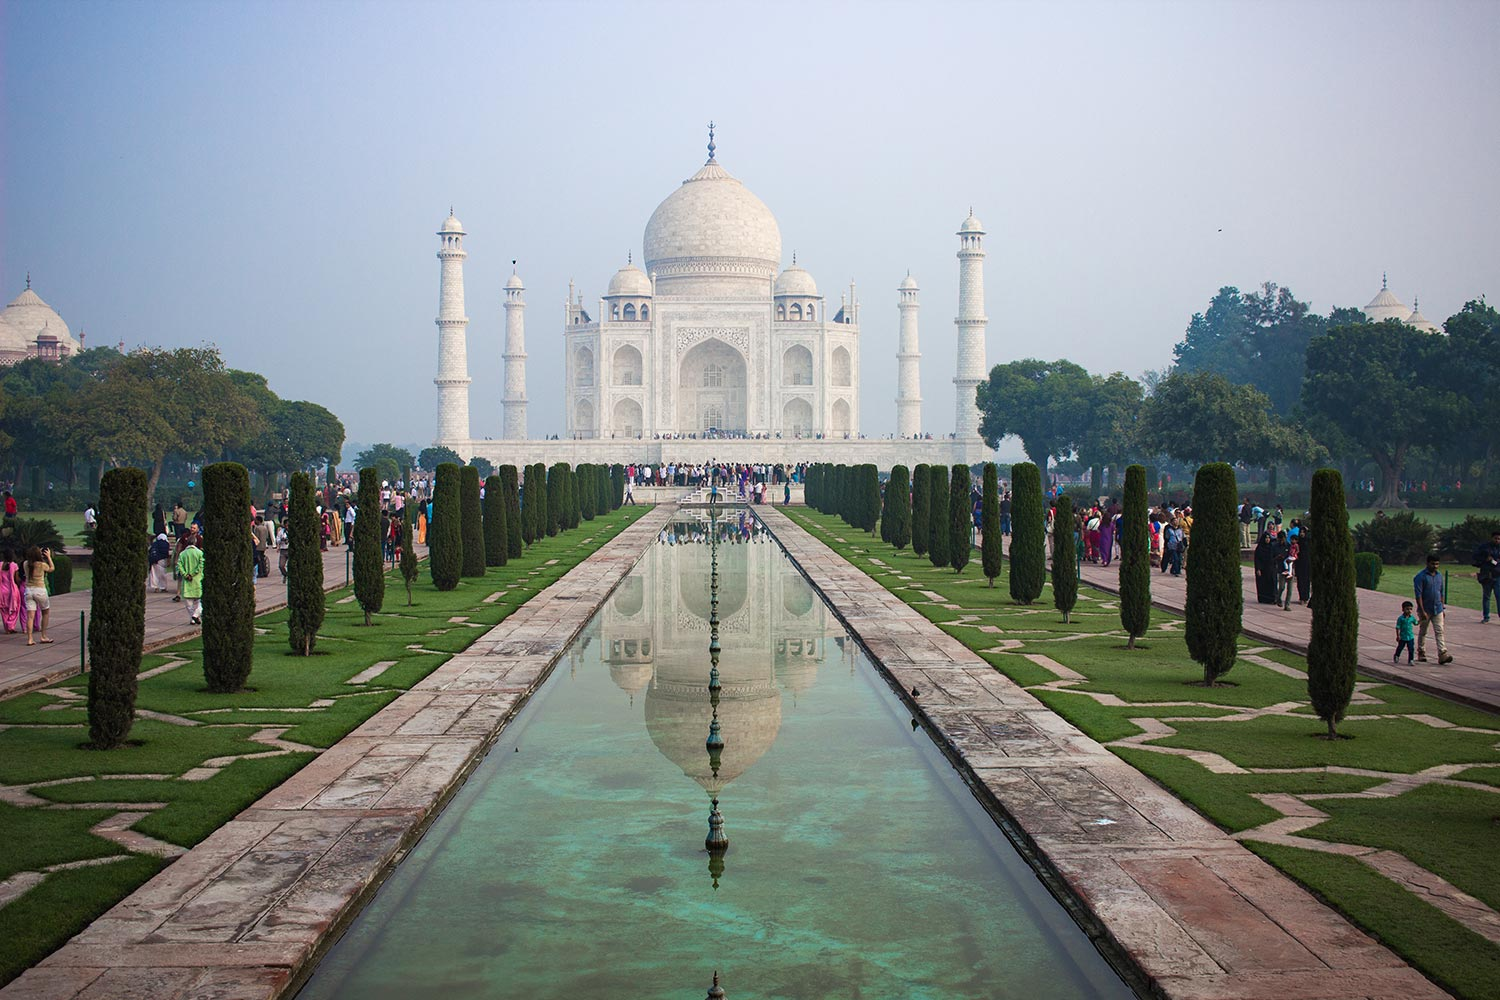 Taj Mahal by Naeem Amyet - Things to do in Agra | Happymind Travels